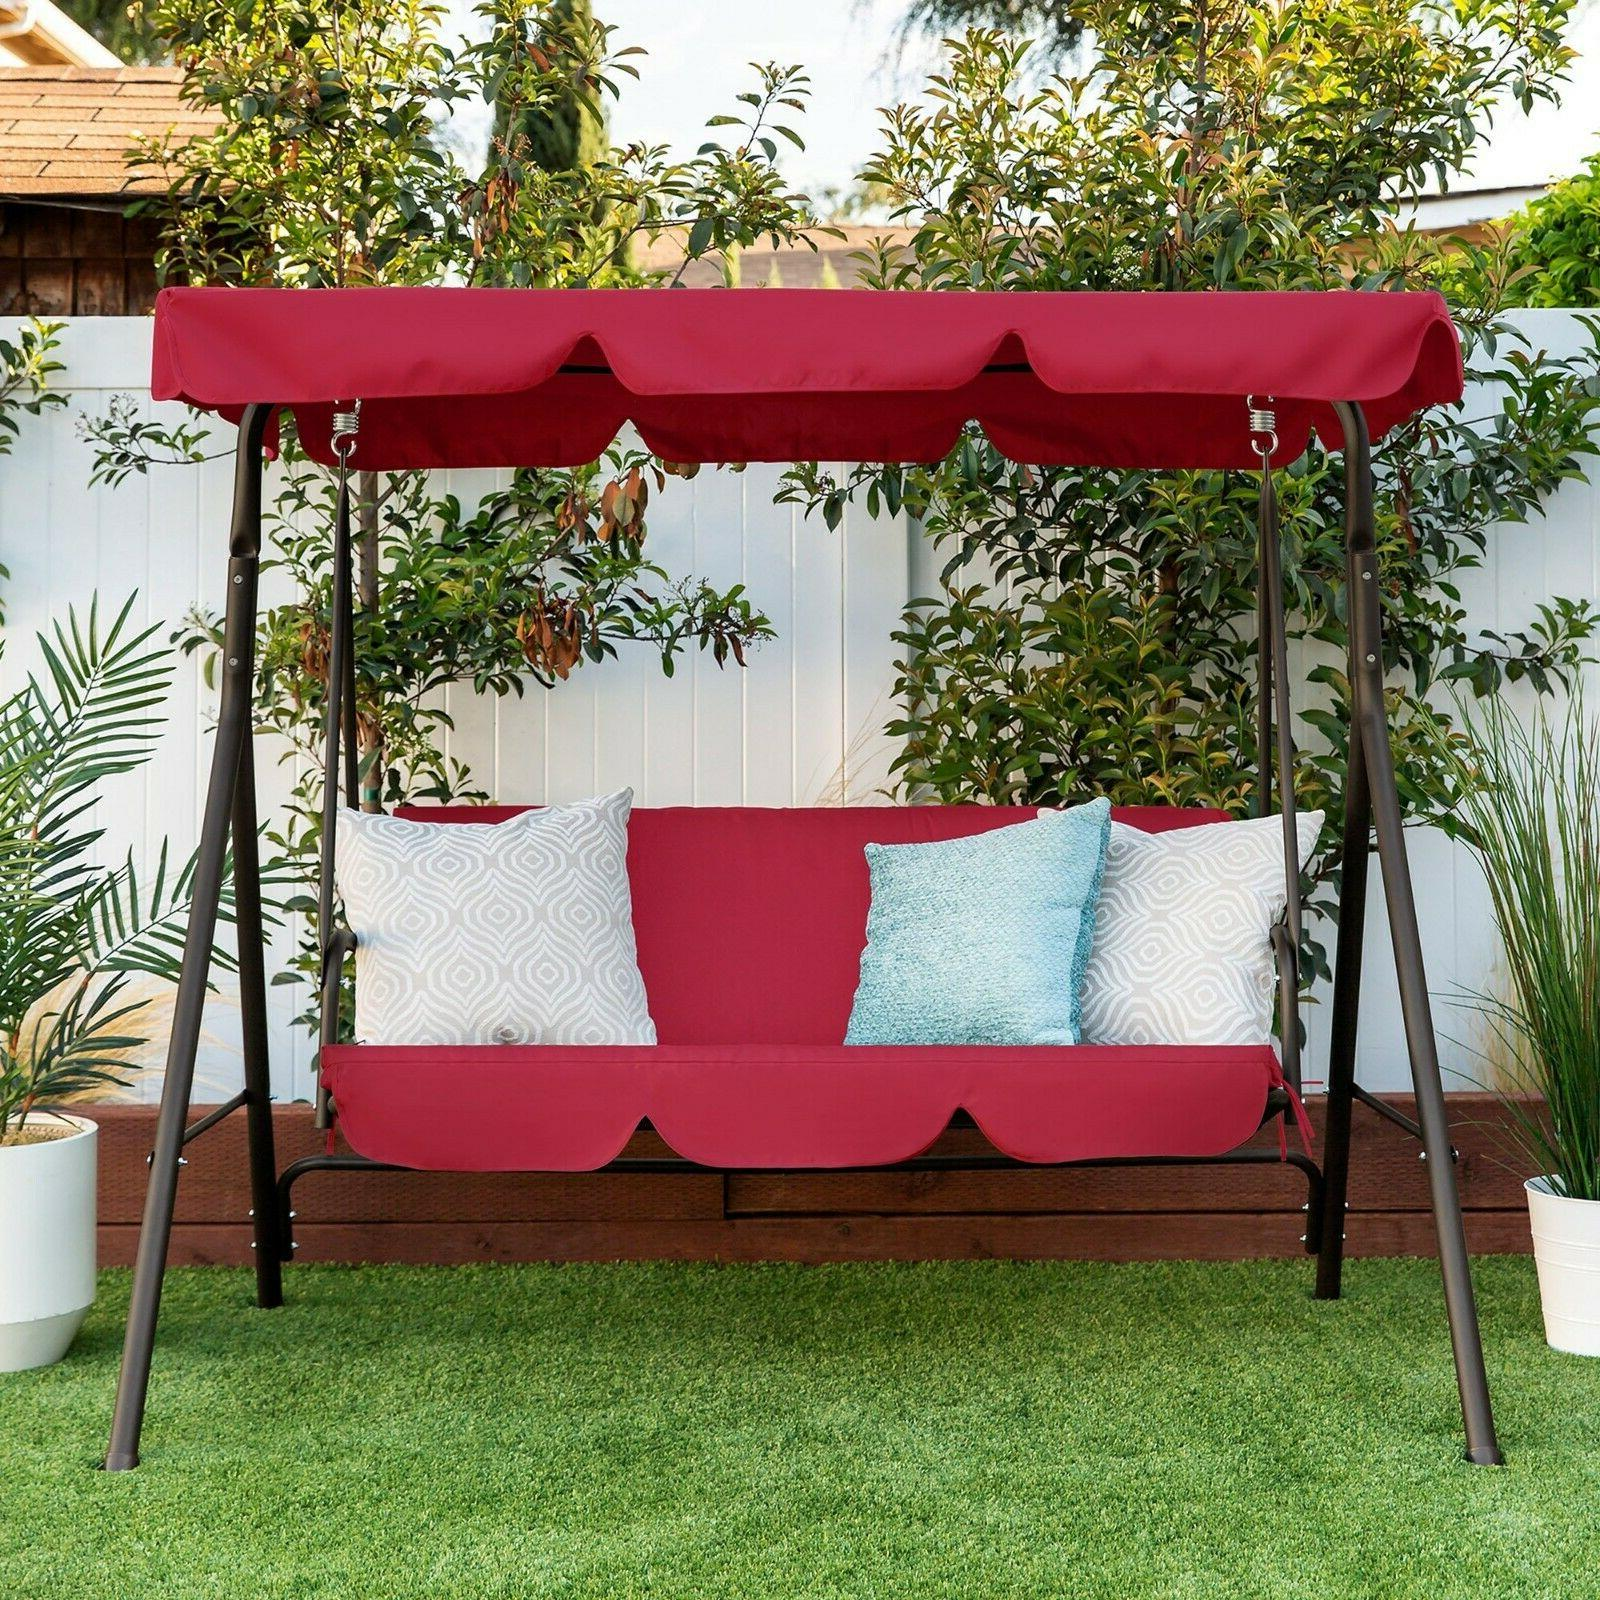 2 person outdoor canopy swing glider furniture